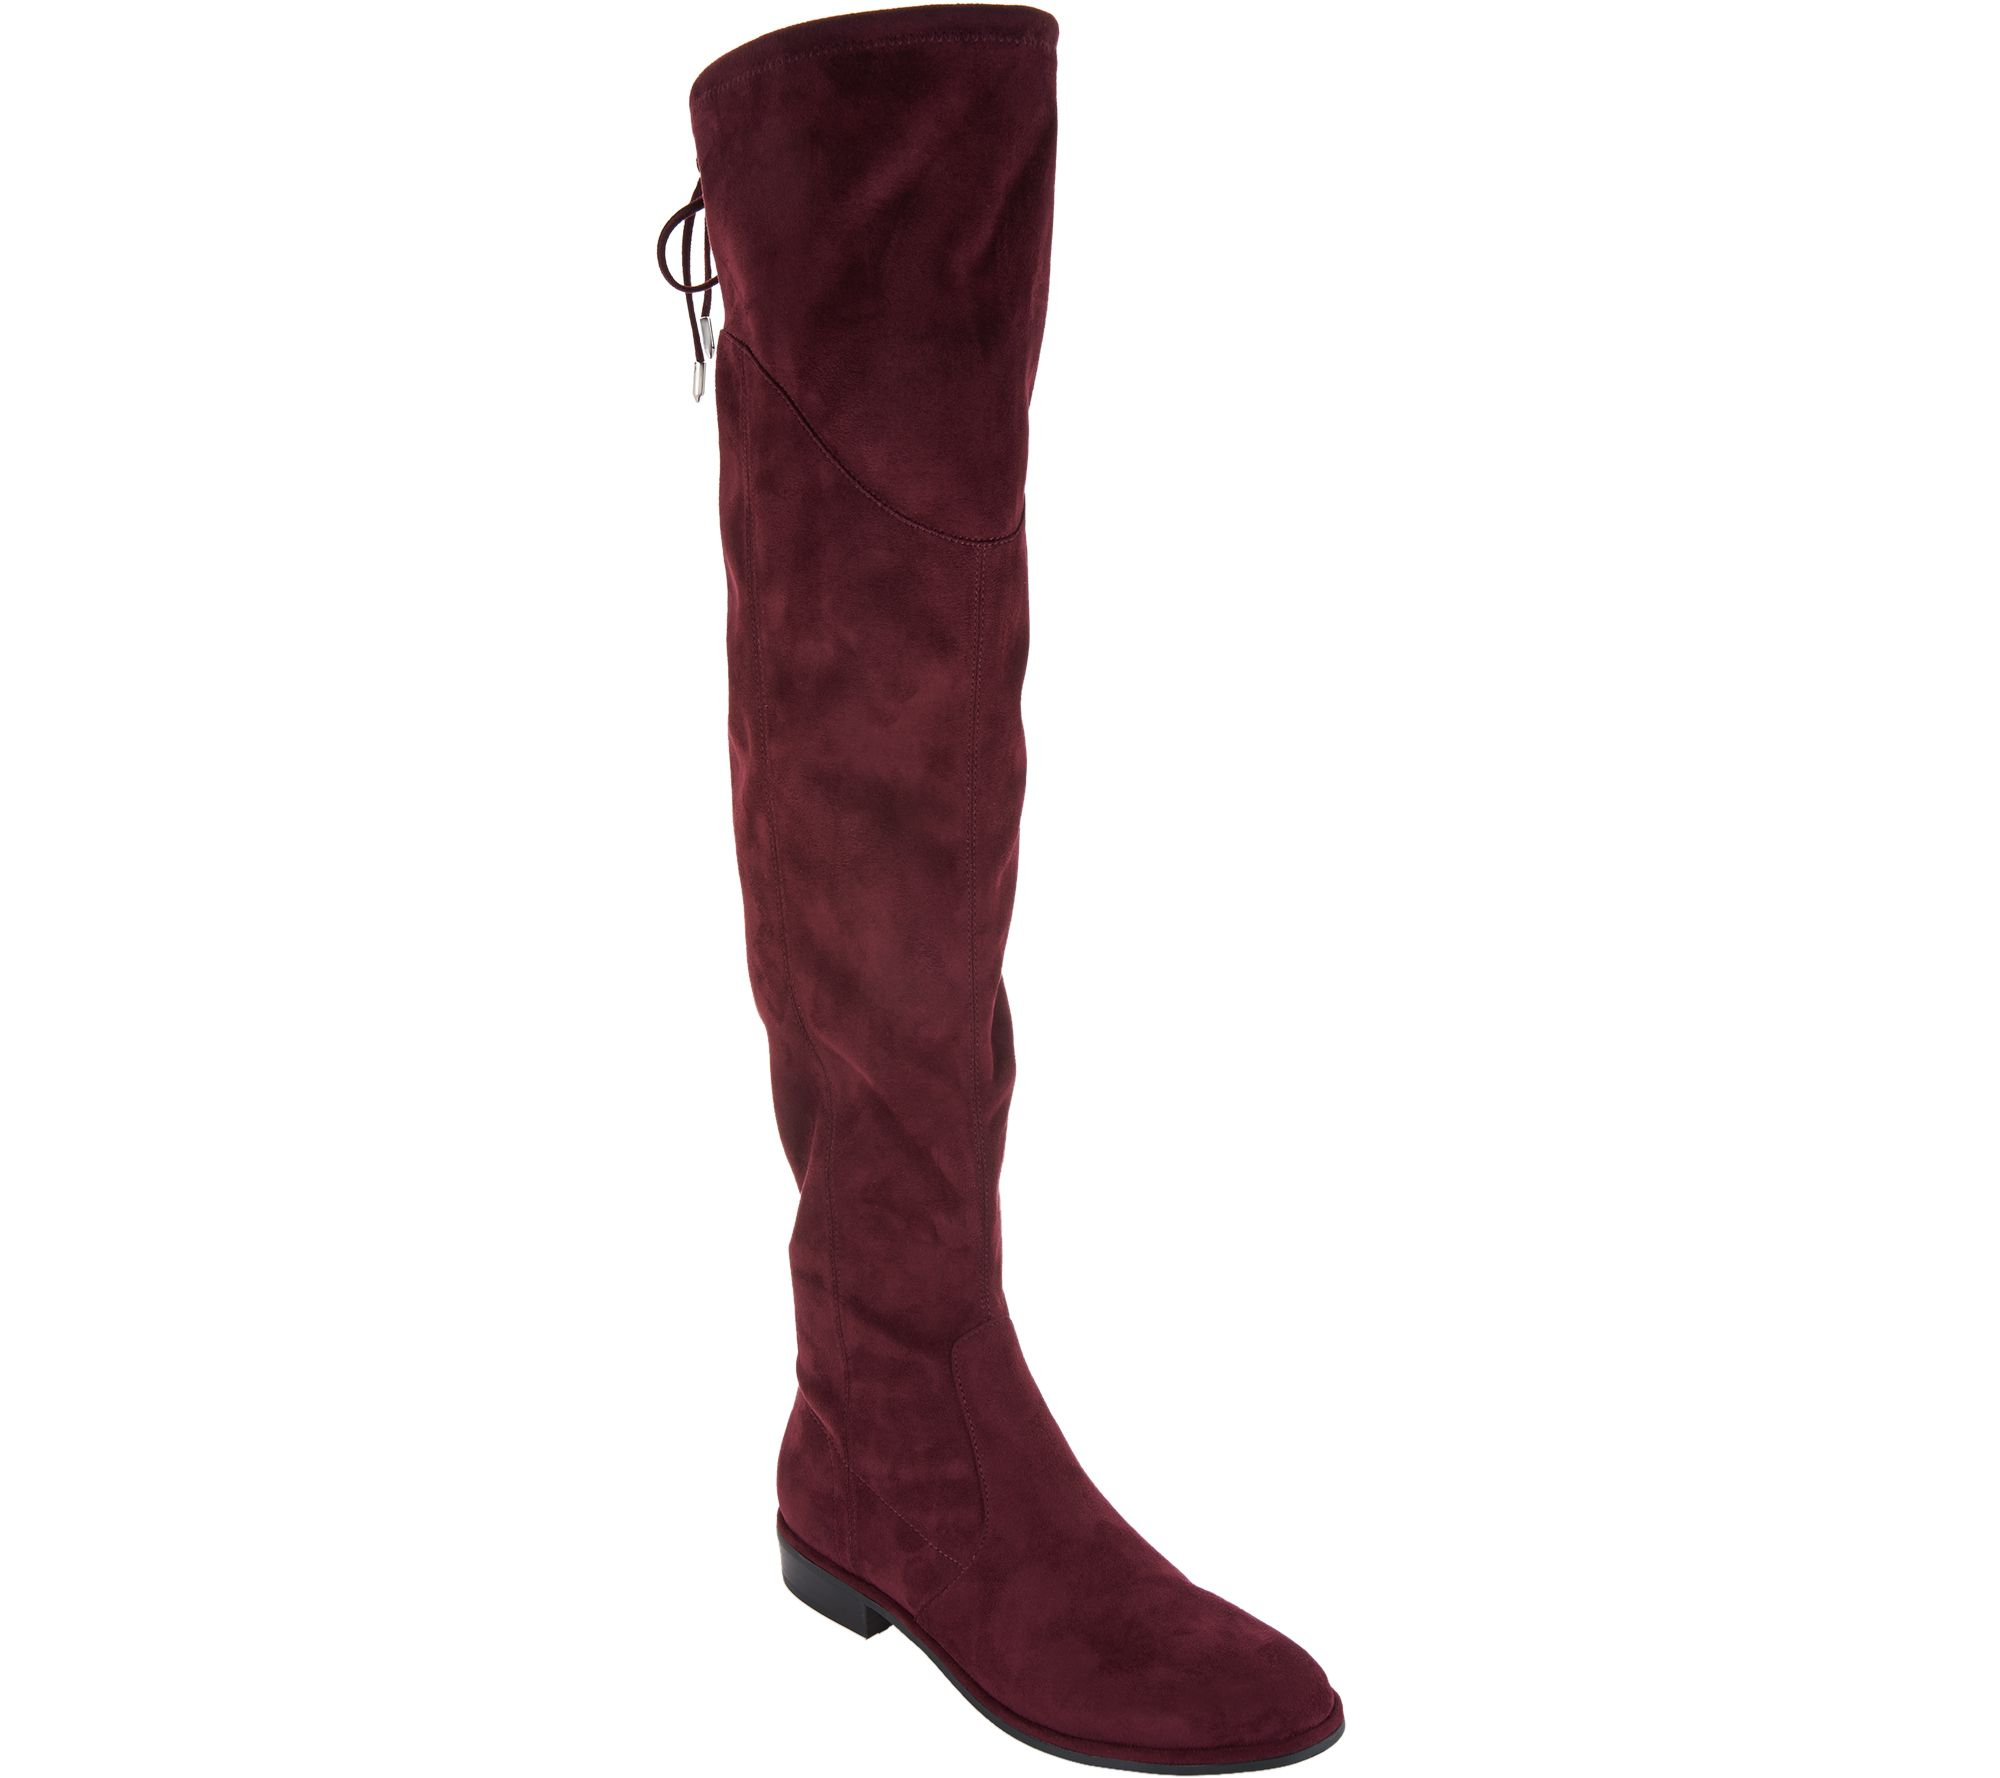 36aef449661 Marc Fisher Faux Suede or Velvet Over-the-Knee Boots - Hulie - Page 1 —  QVC.com